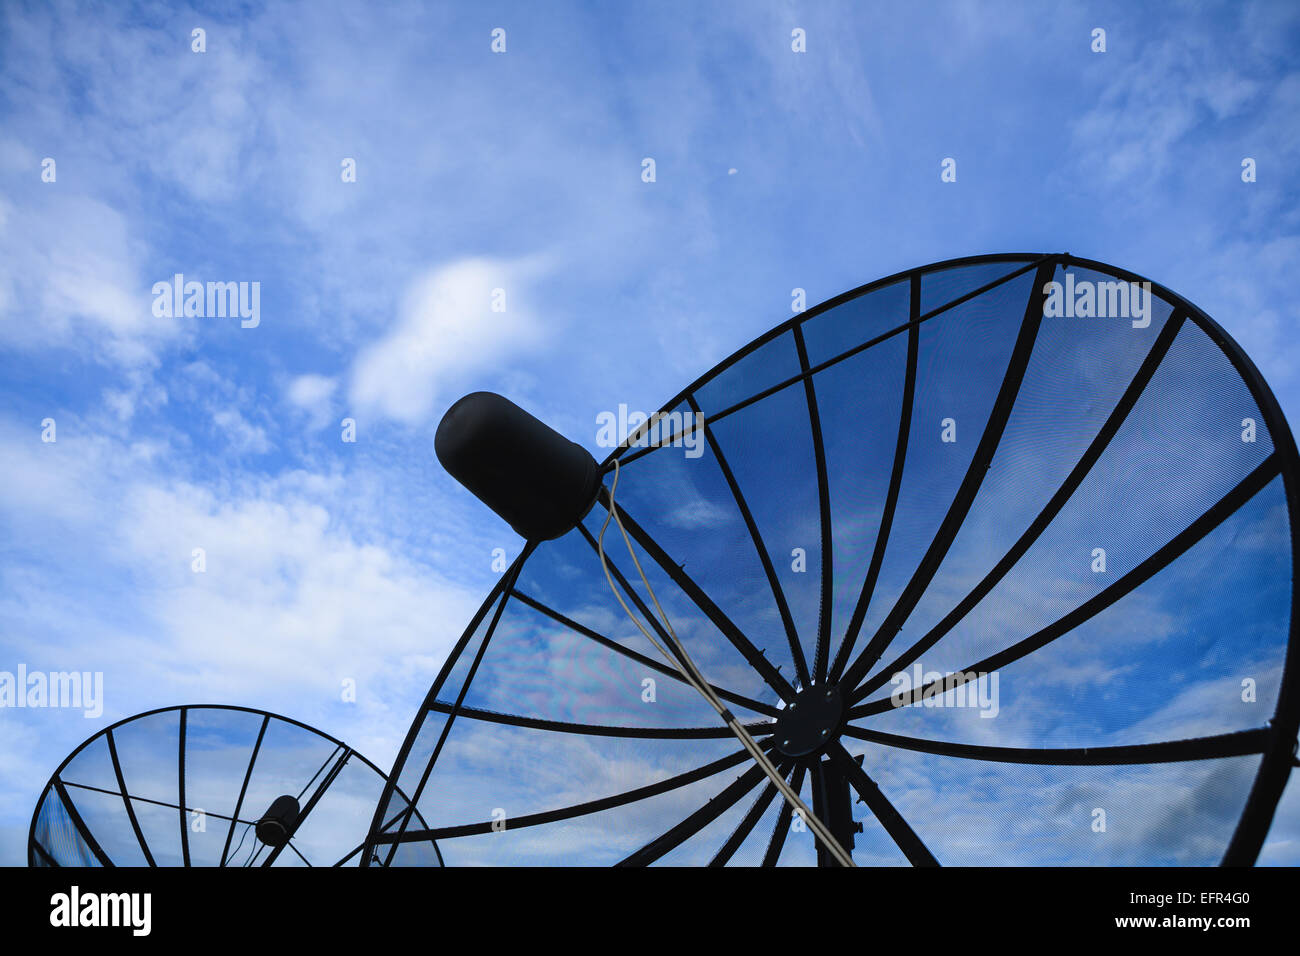 Double black Satellite dish against blue cloudy sky in early morning - Stock Image